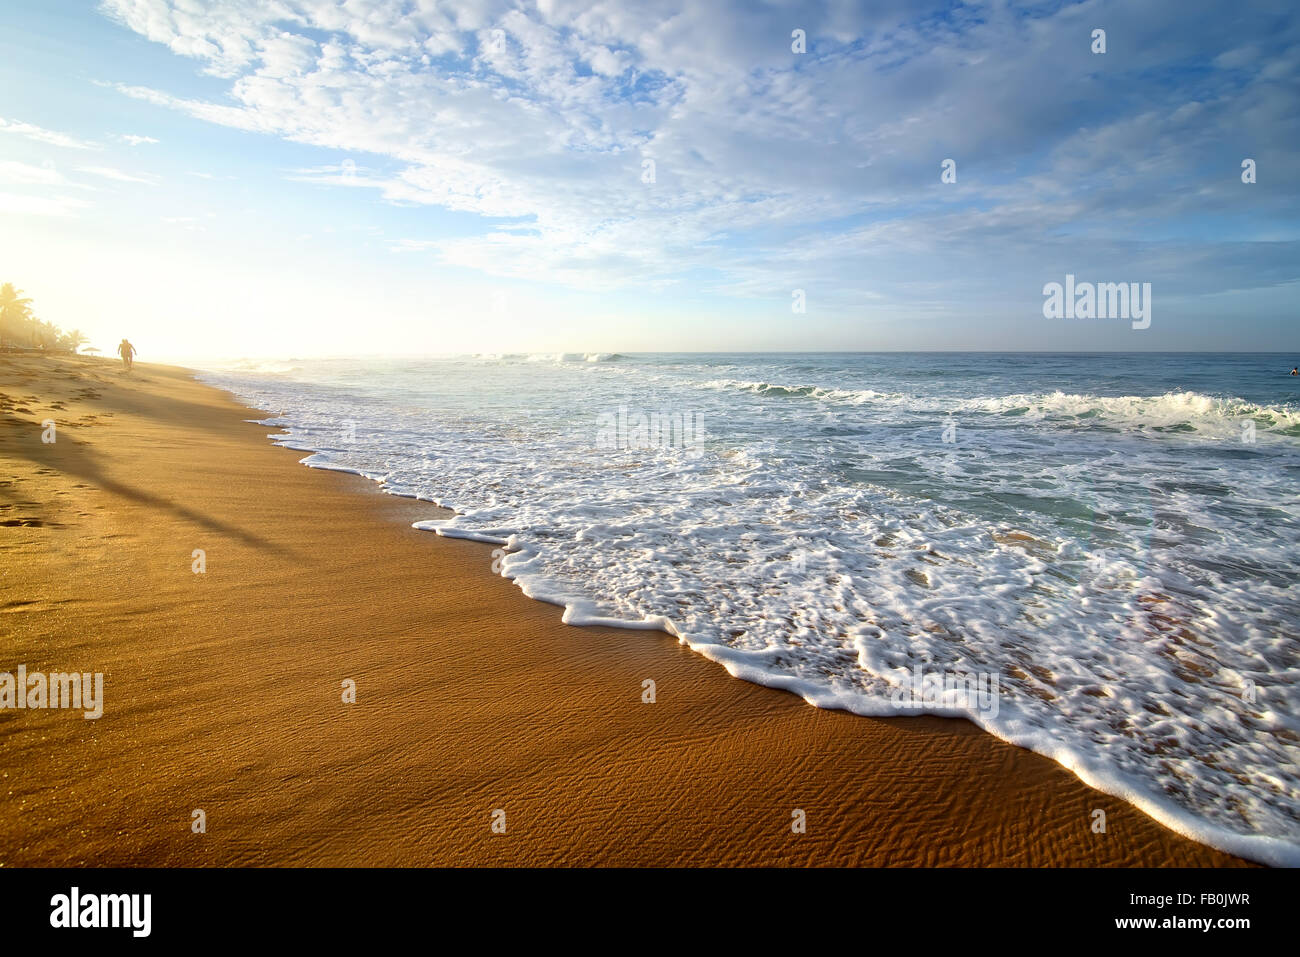 Bright morning on a sandy beach of the ocean - Stock Image